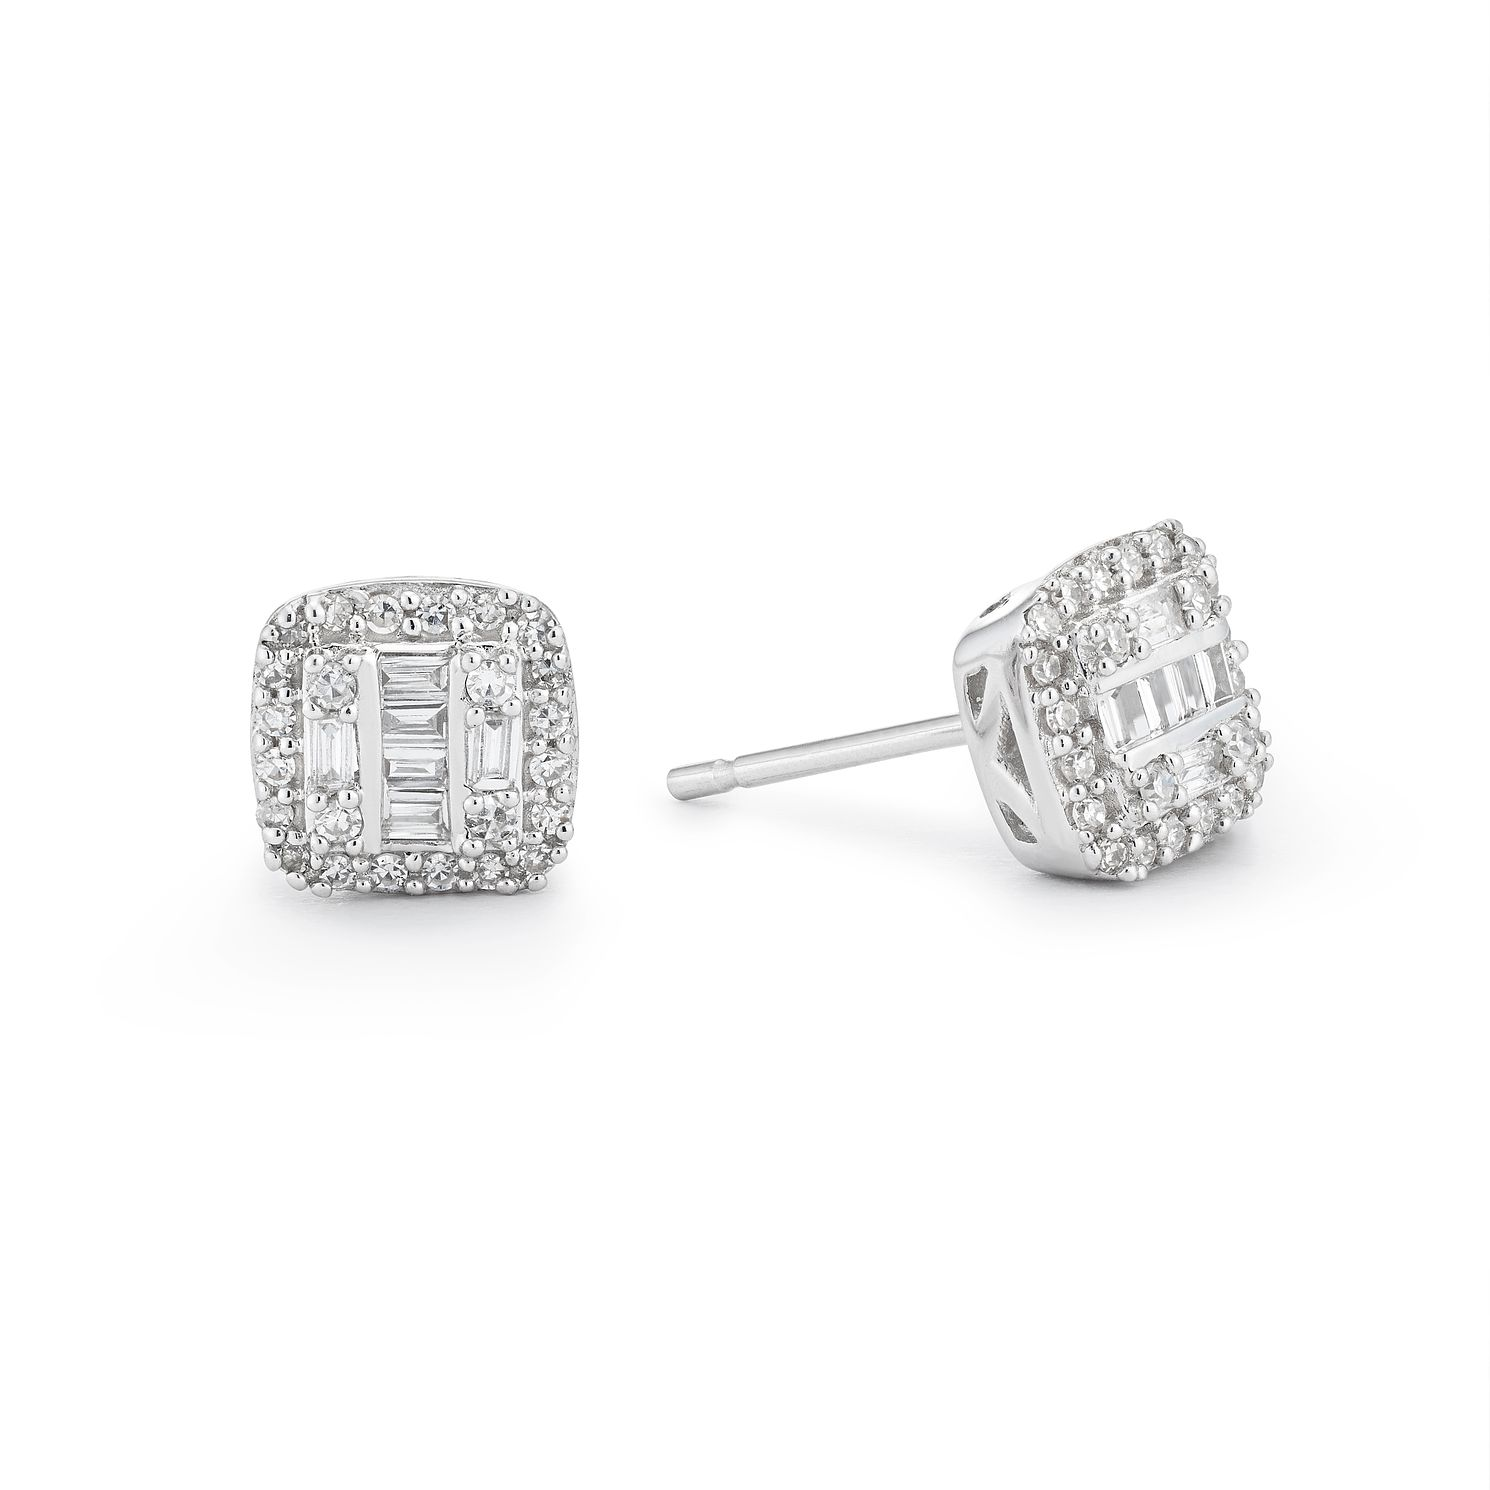 9ct White Gold Cushion Cut 0.15ct Total Diamond Earrings - Product number 1098799